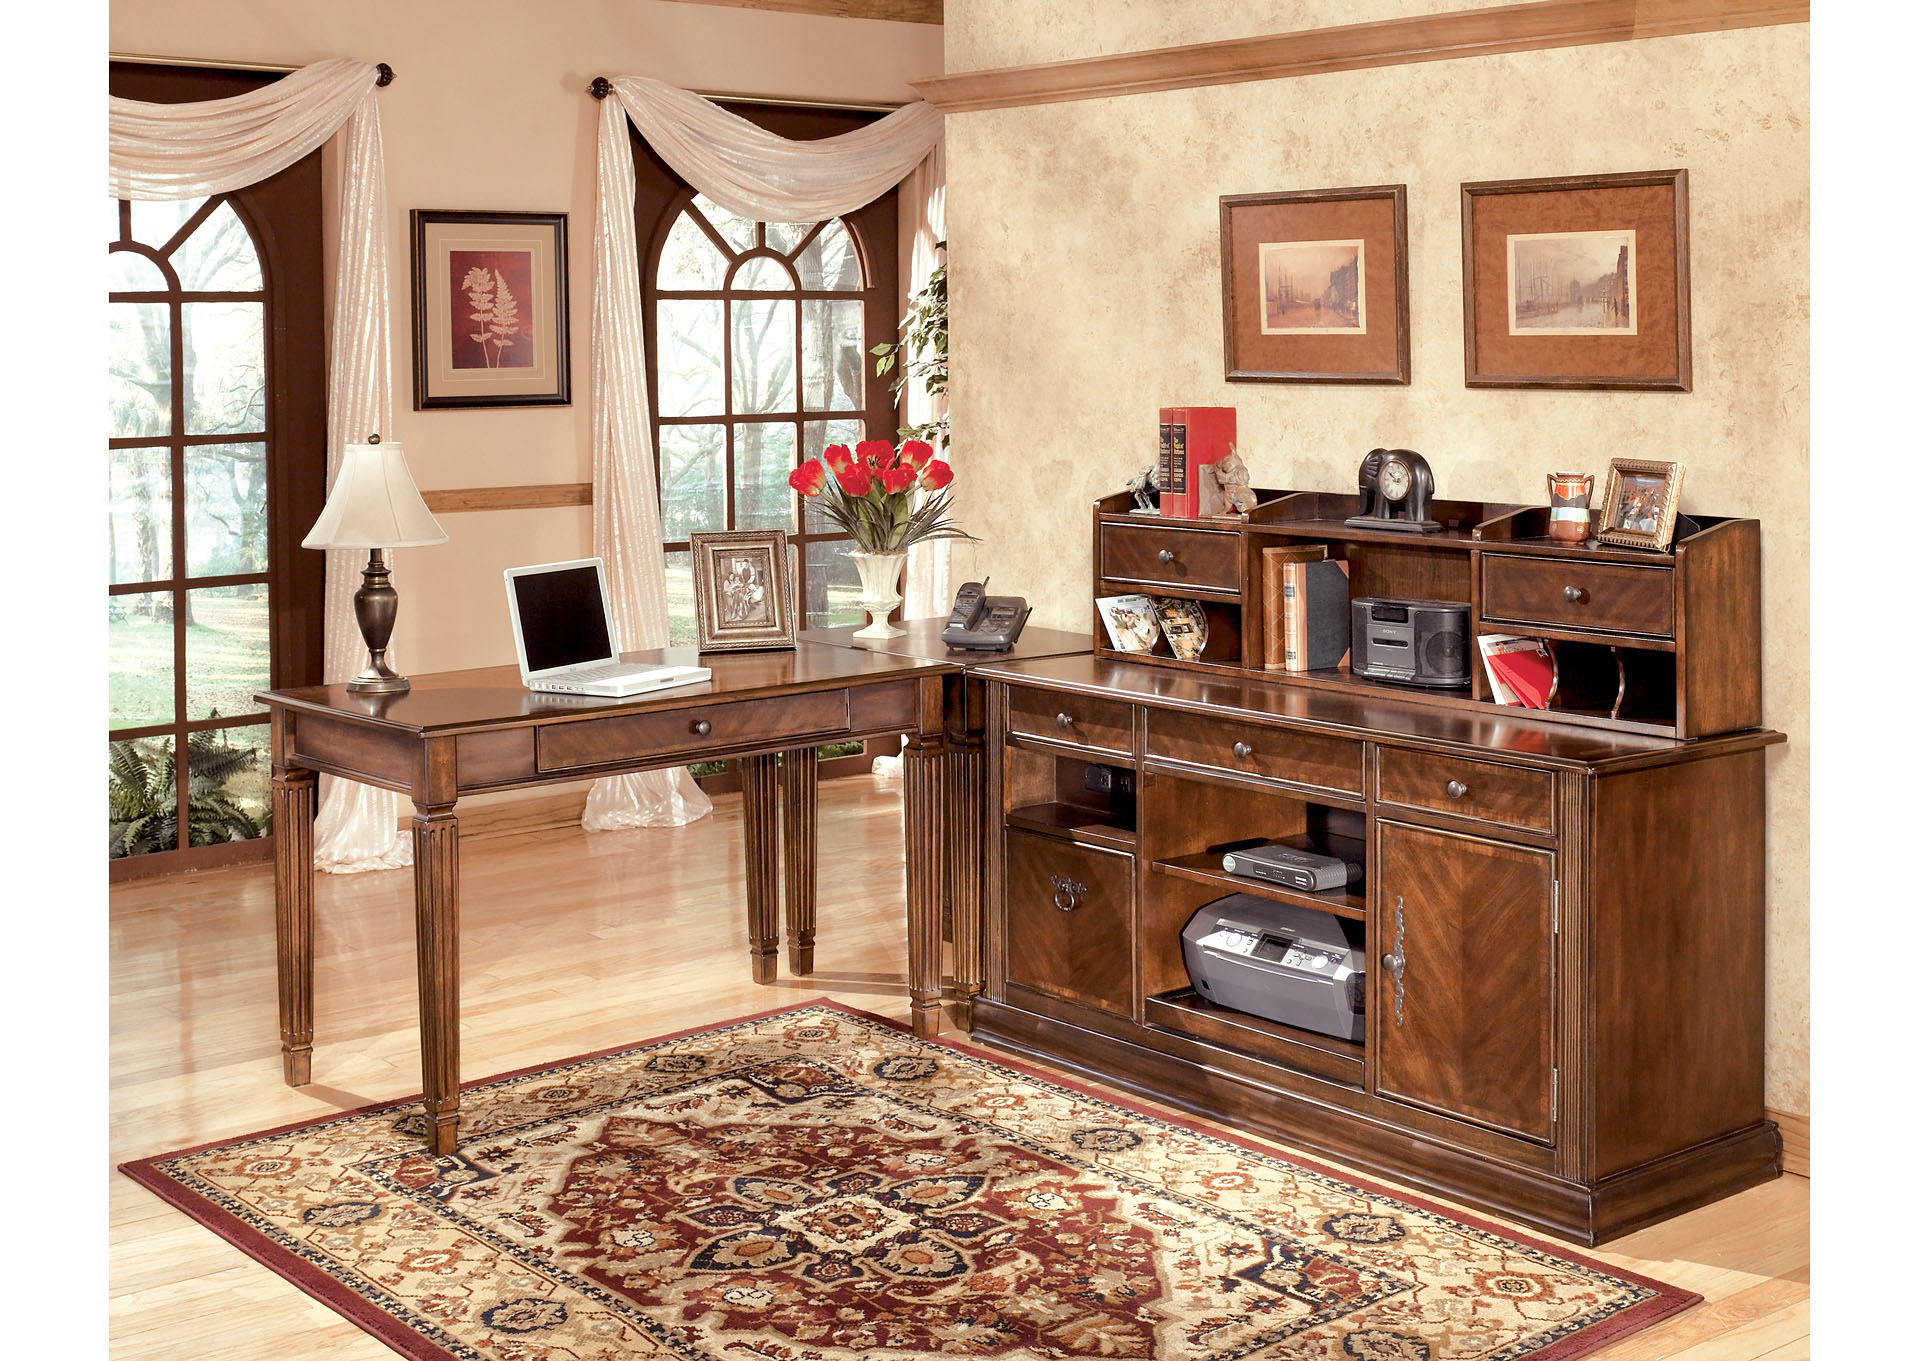 Hamlyn L-Shaped Desk w/ Hutch & Credenza,ABF Signature Design by Ashley